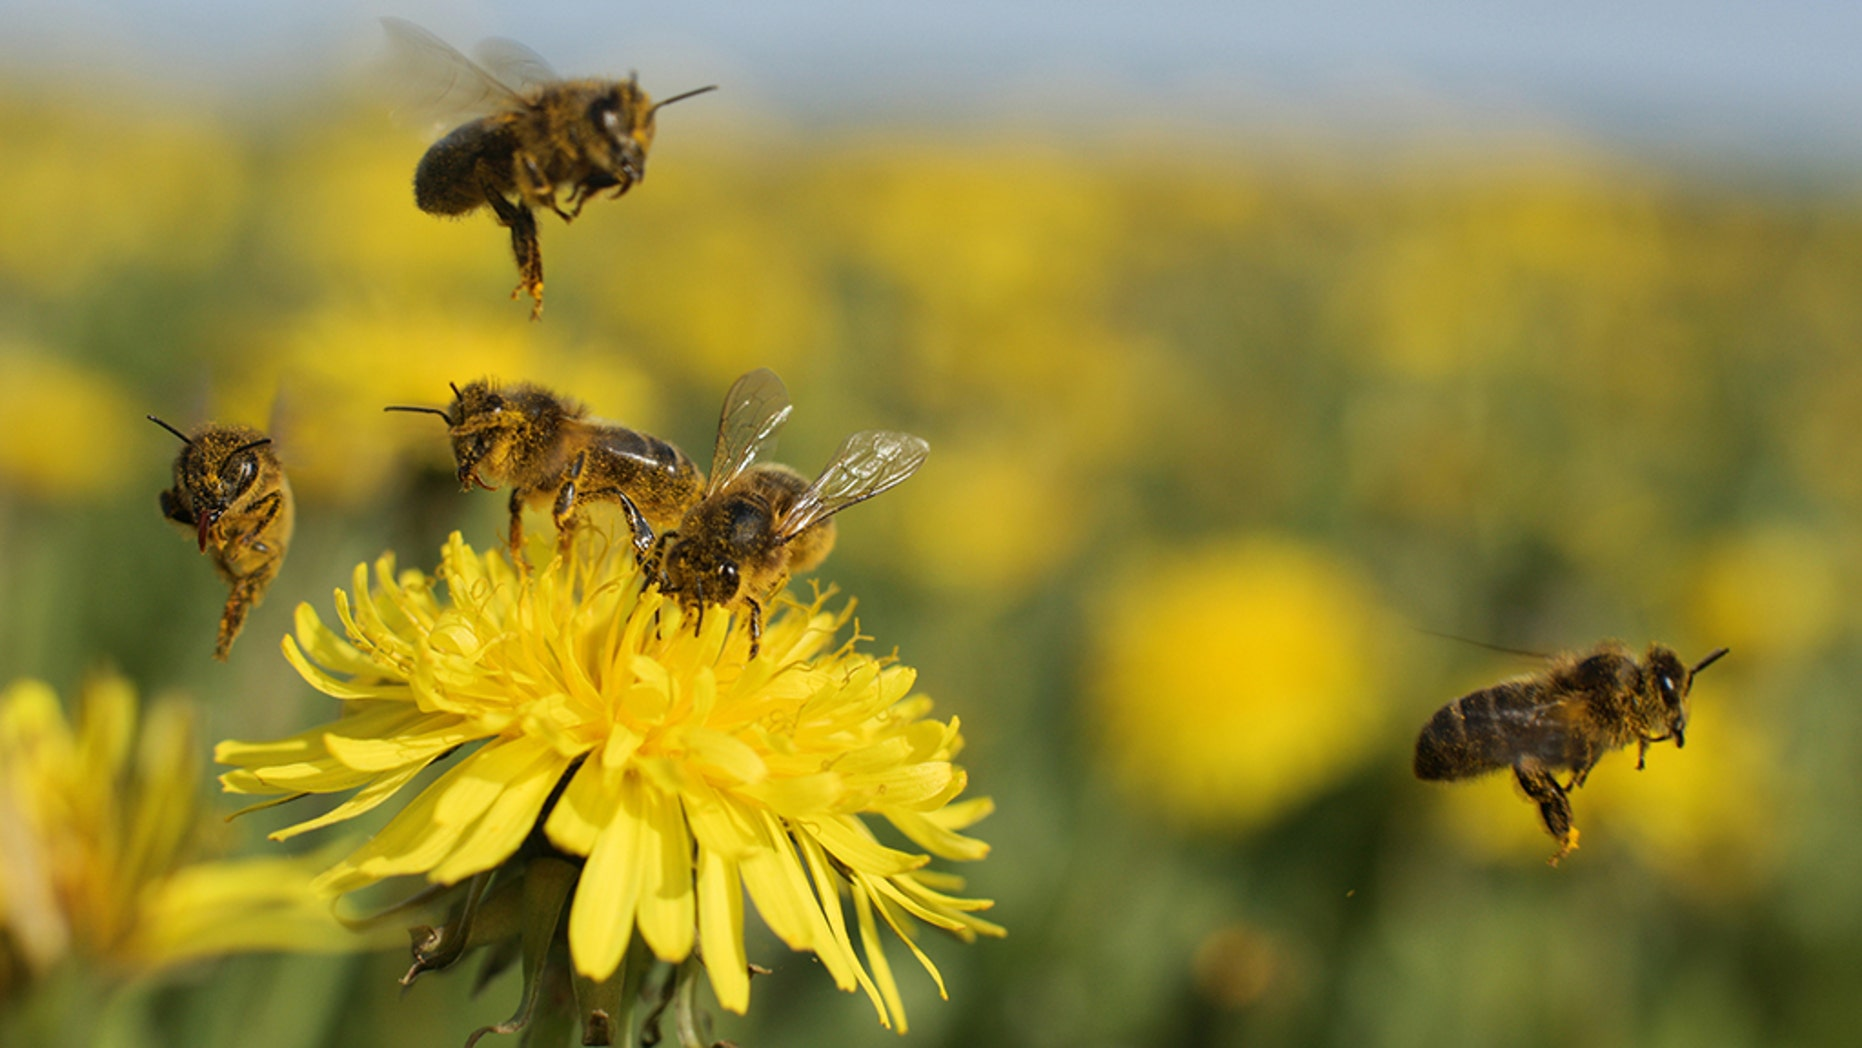 Researchers have looked into what happens to honey bees exposed to an herbicide called glyphosate.